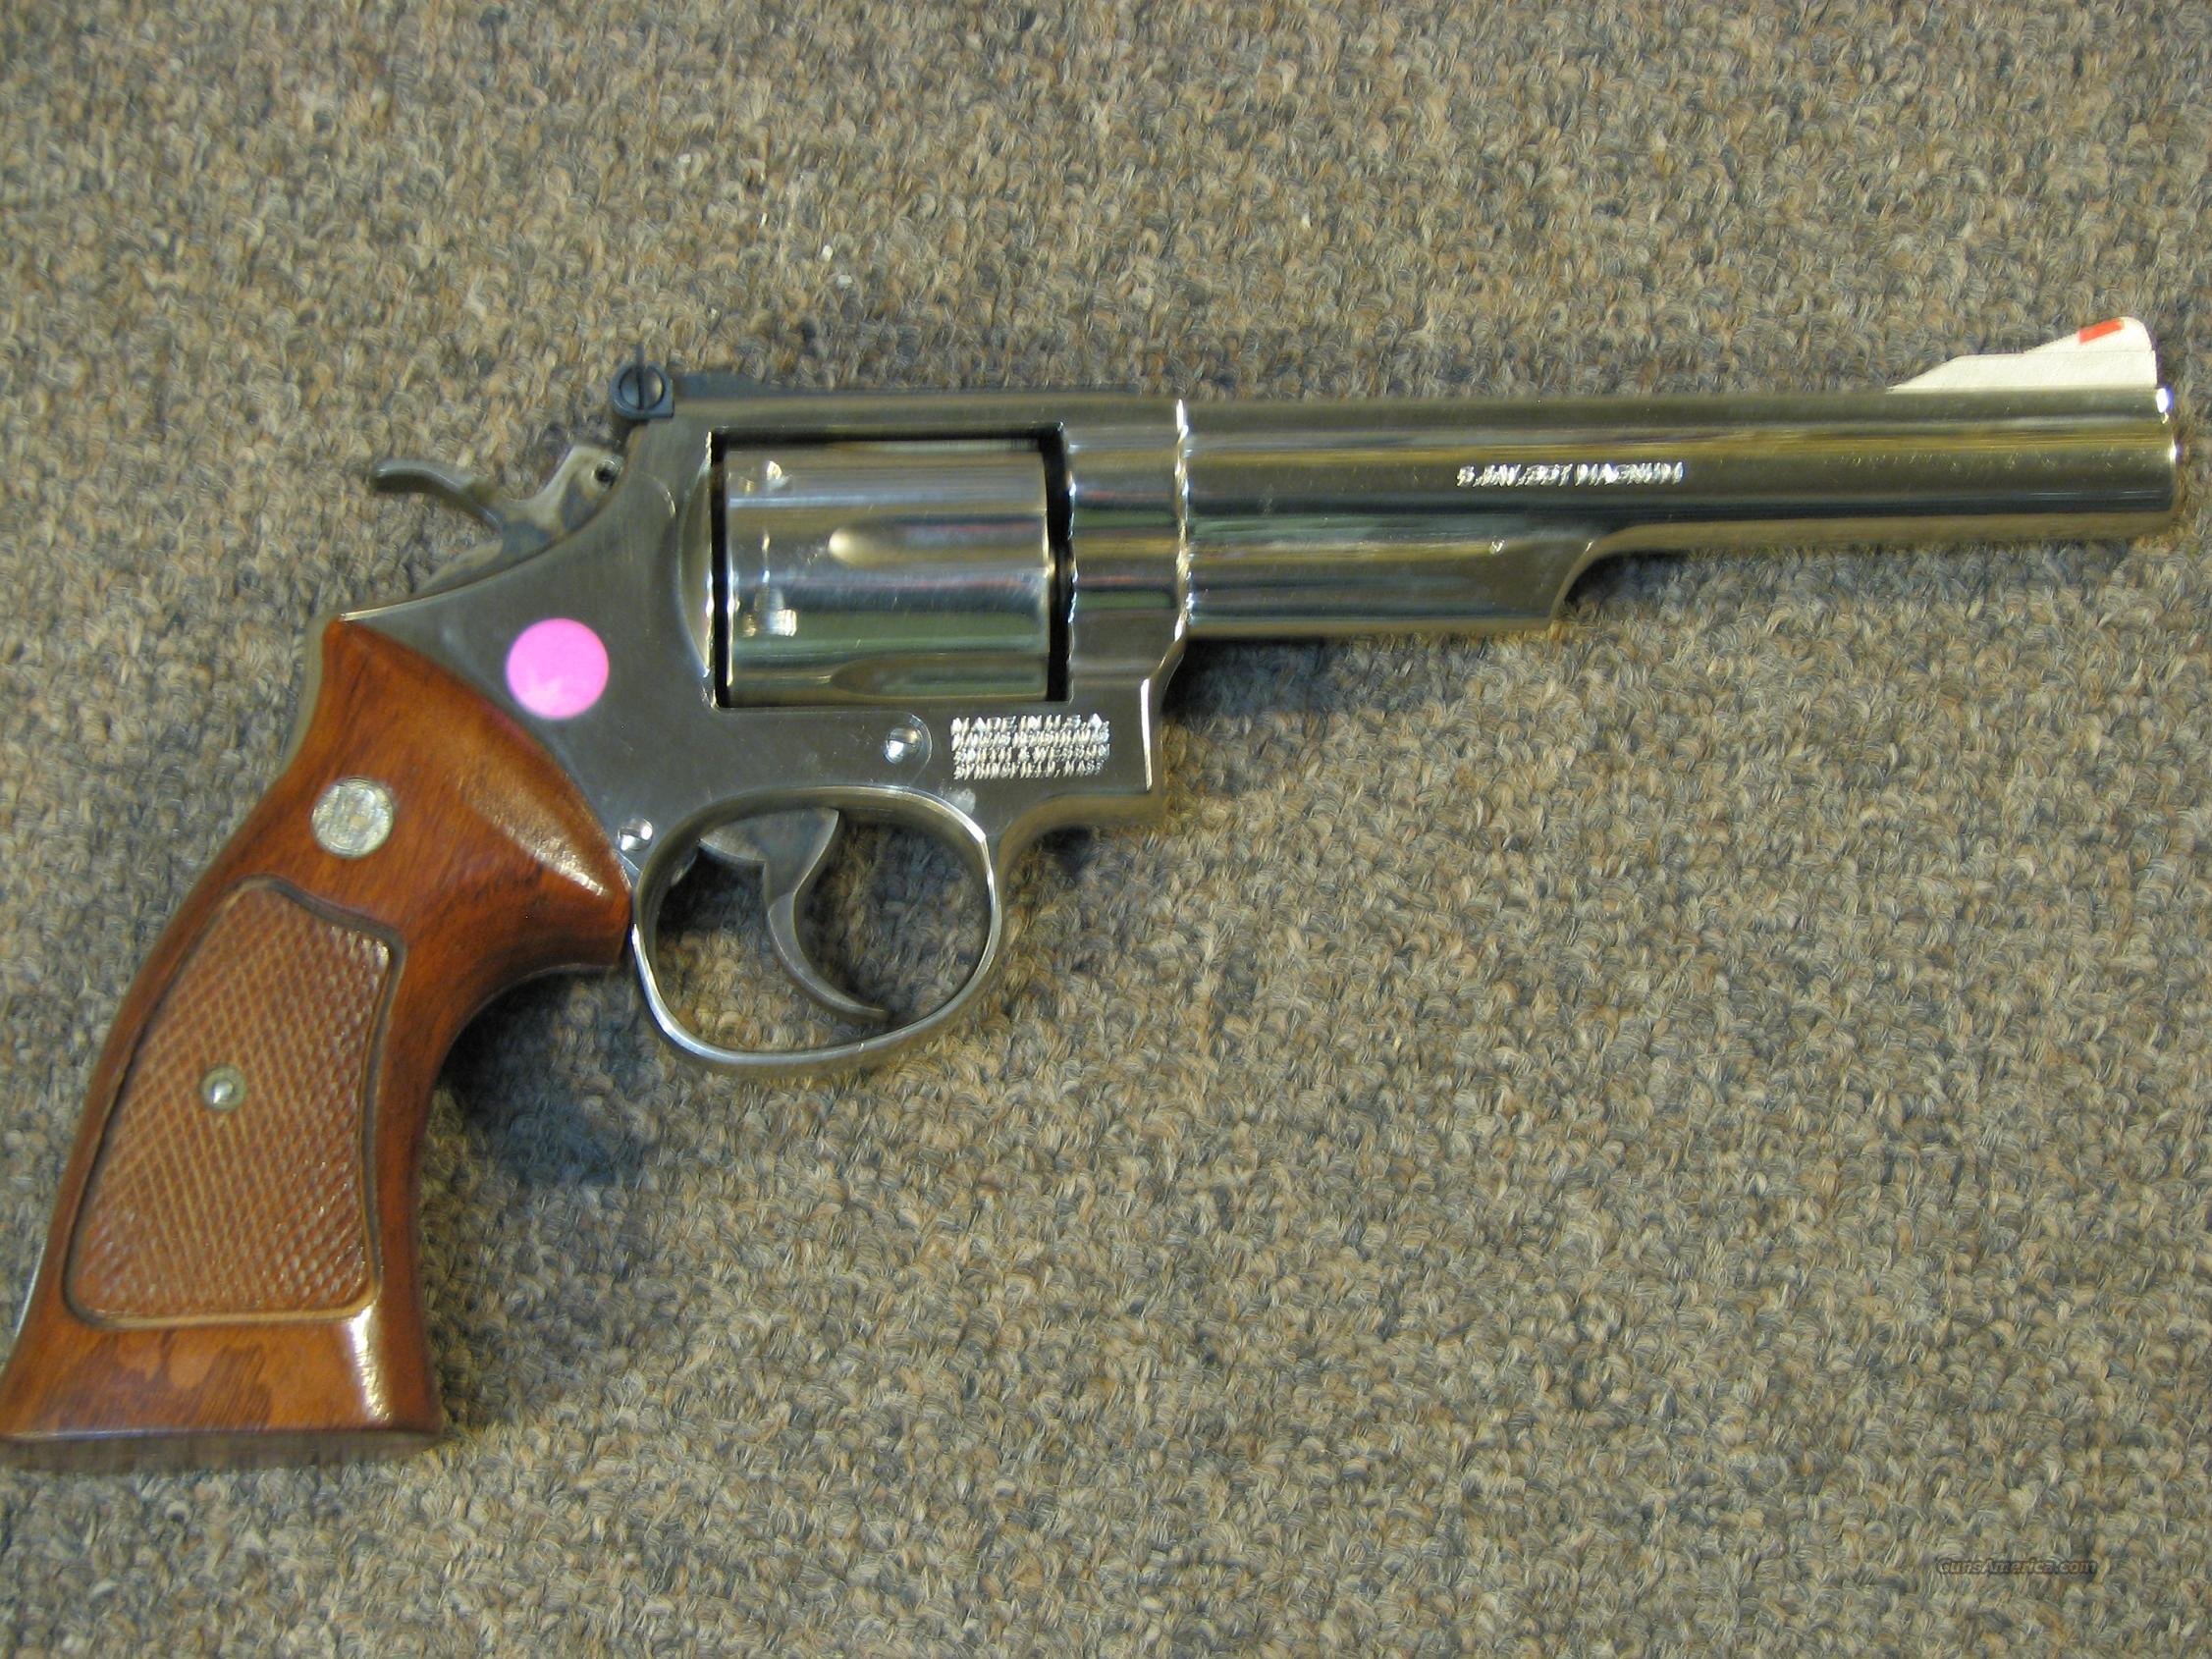 SMITH & WESSON 19-5 NICKEL PLATED - LIKE NEW!  Guns > Pistols > Smith & Wesson Revolvers > Full Frame Revolver